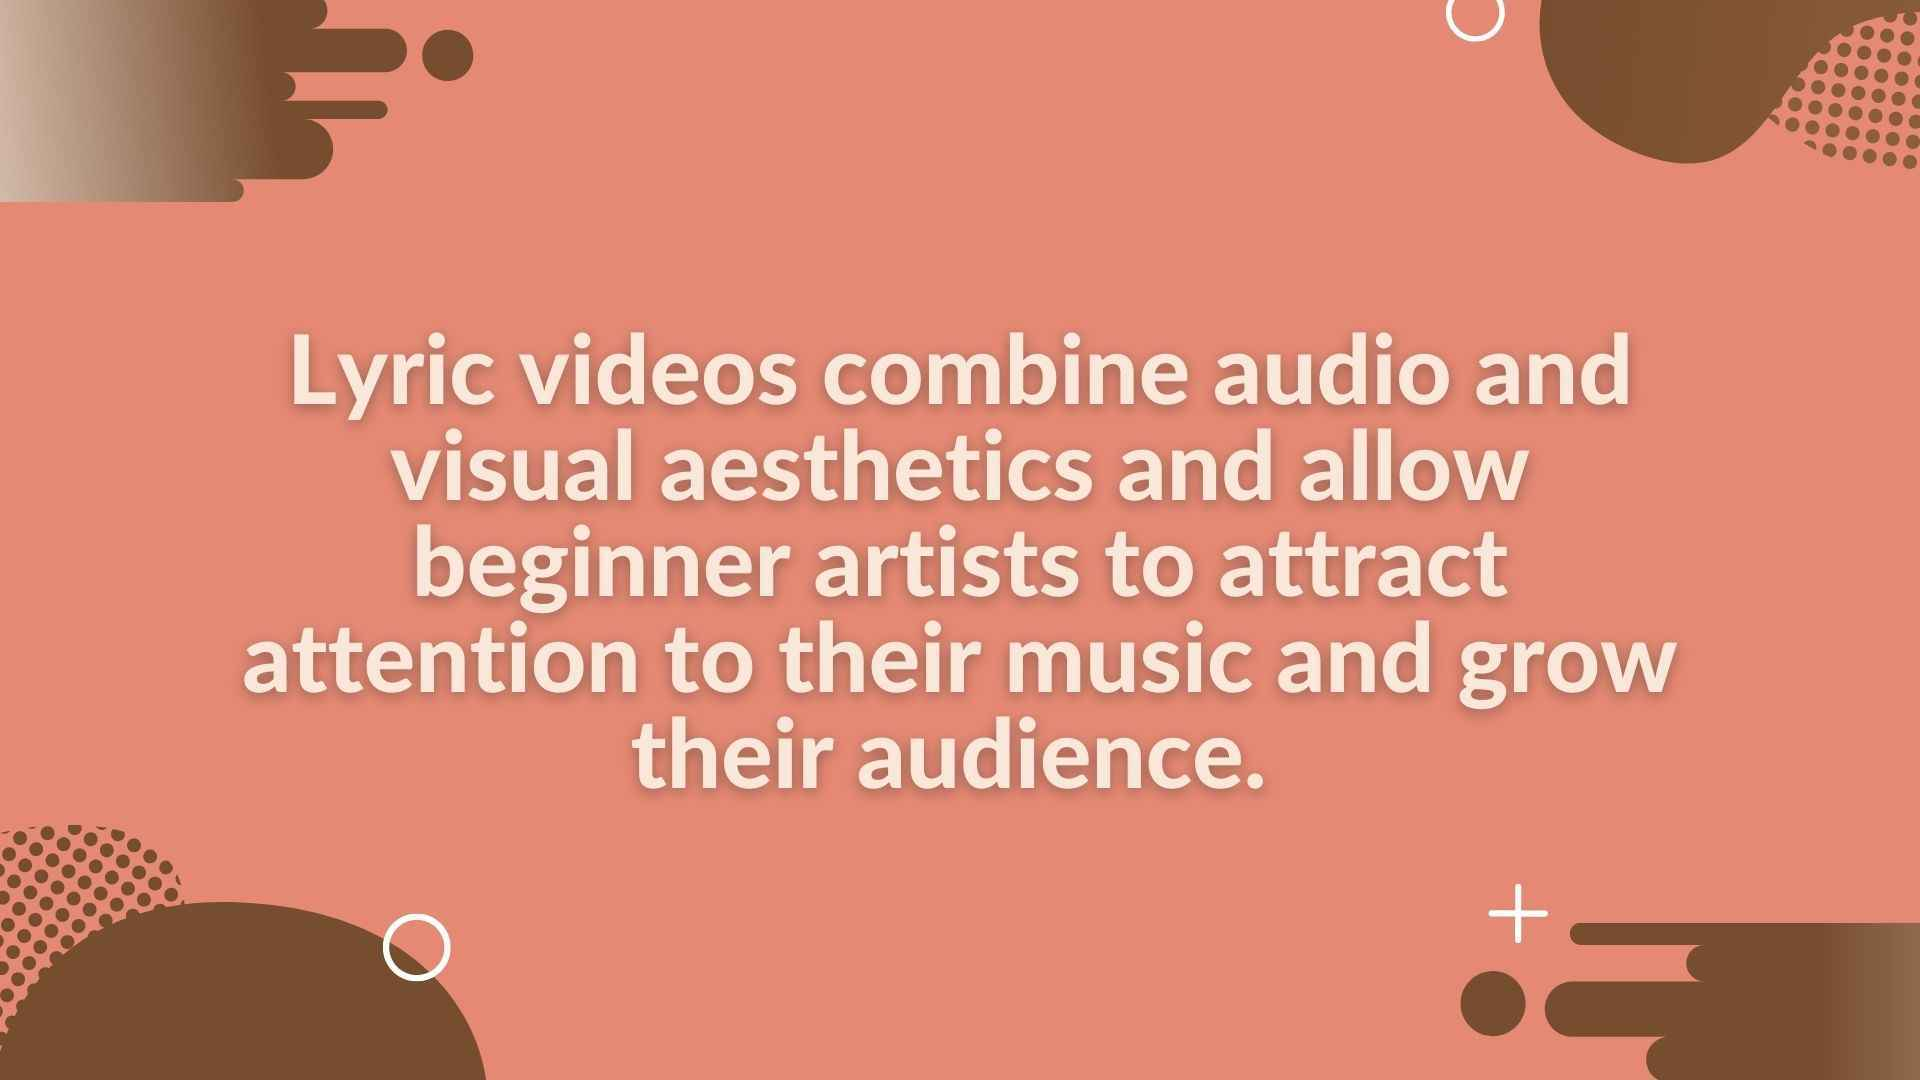 Features of lyrical videos